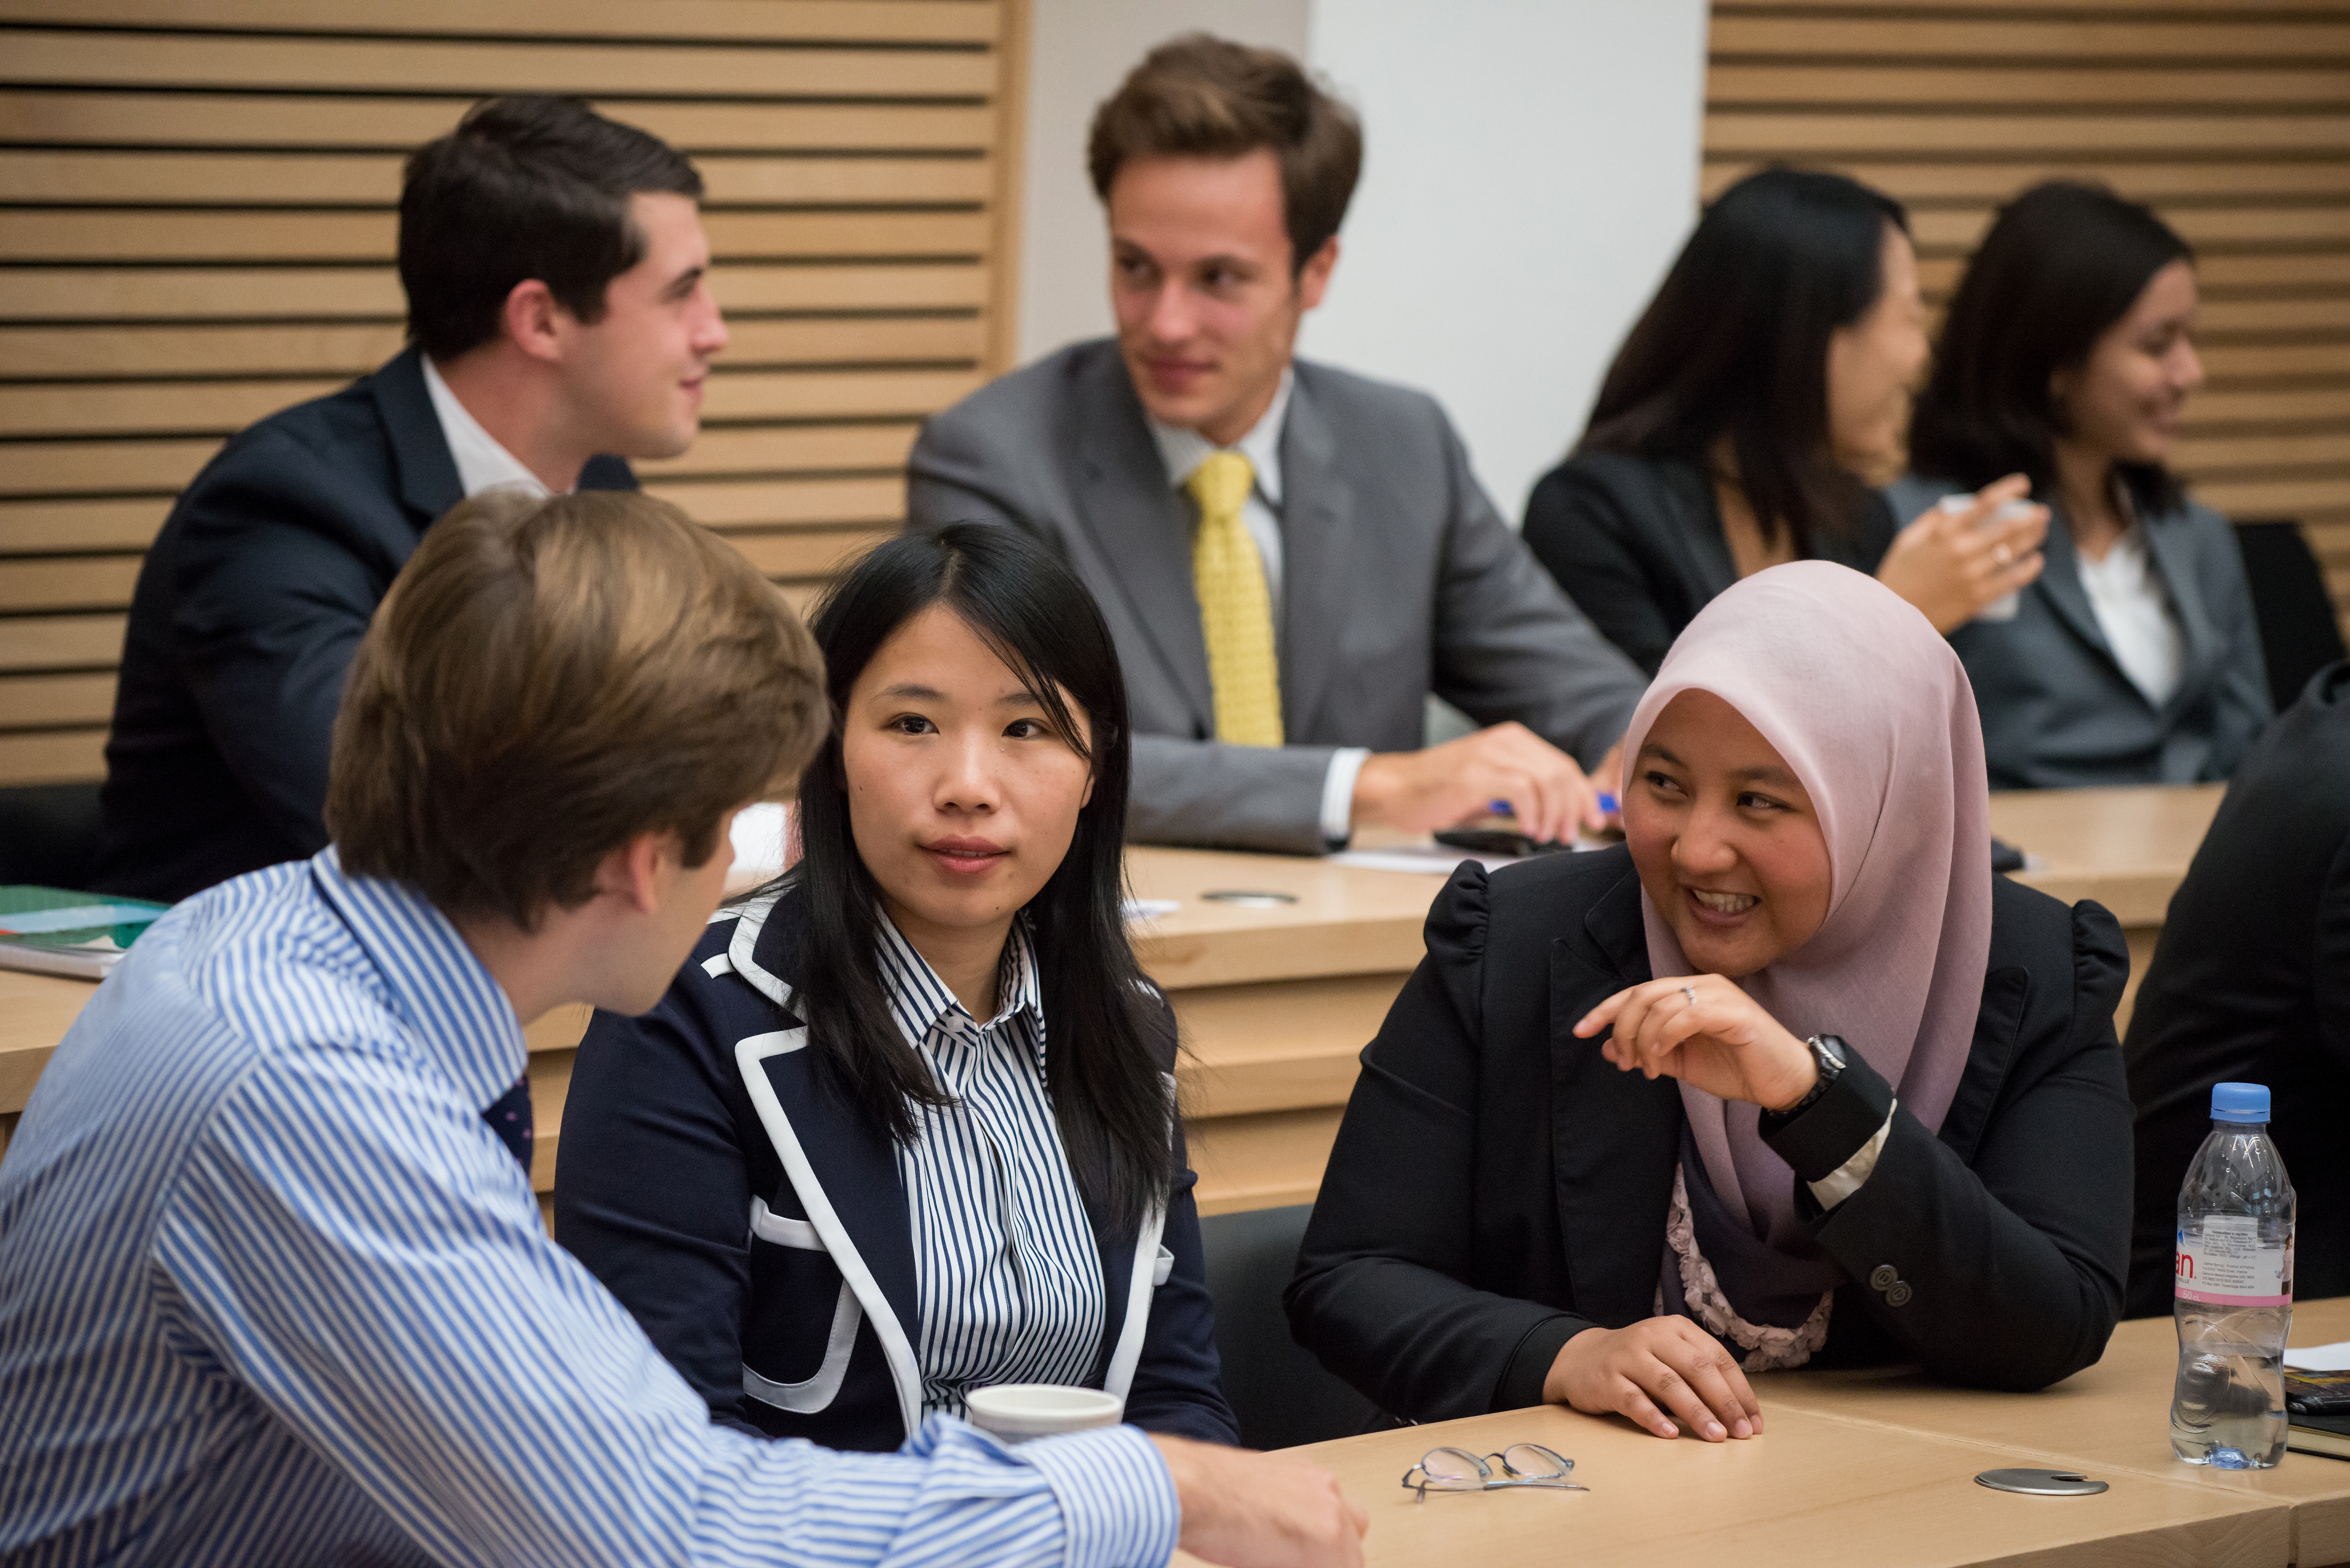 Postgraduate Diploma In Intellectual Property Law And Practice